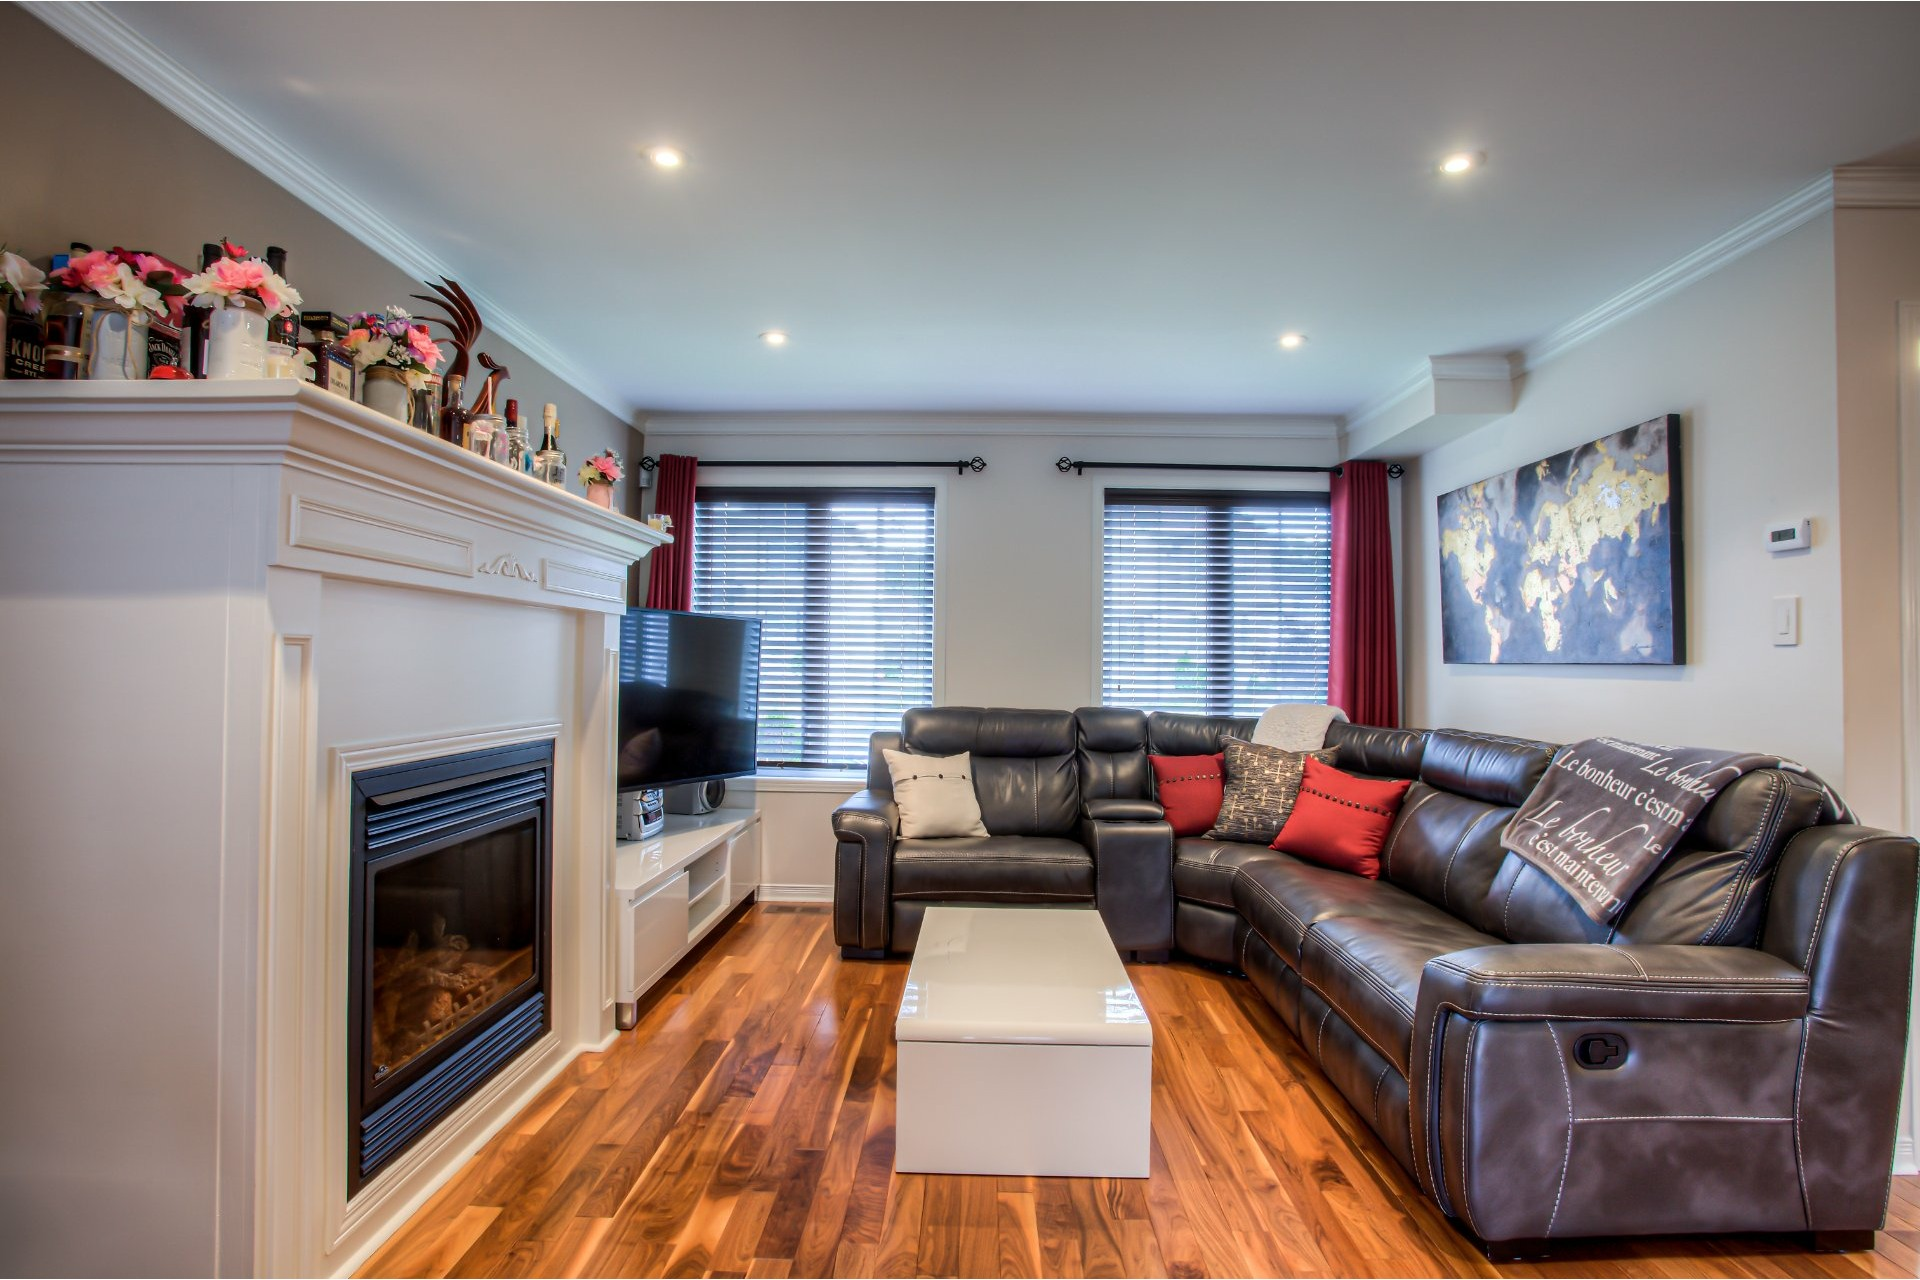 image 4 - House For sale Vaudreuil-Dorion - 9 rooms